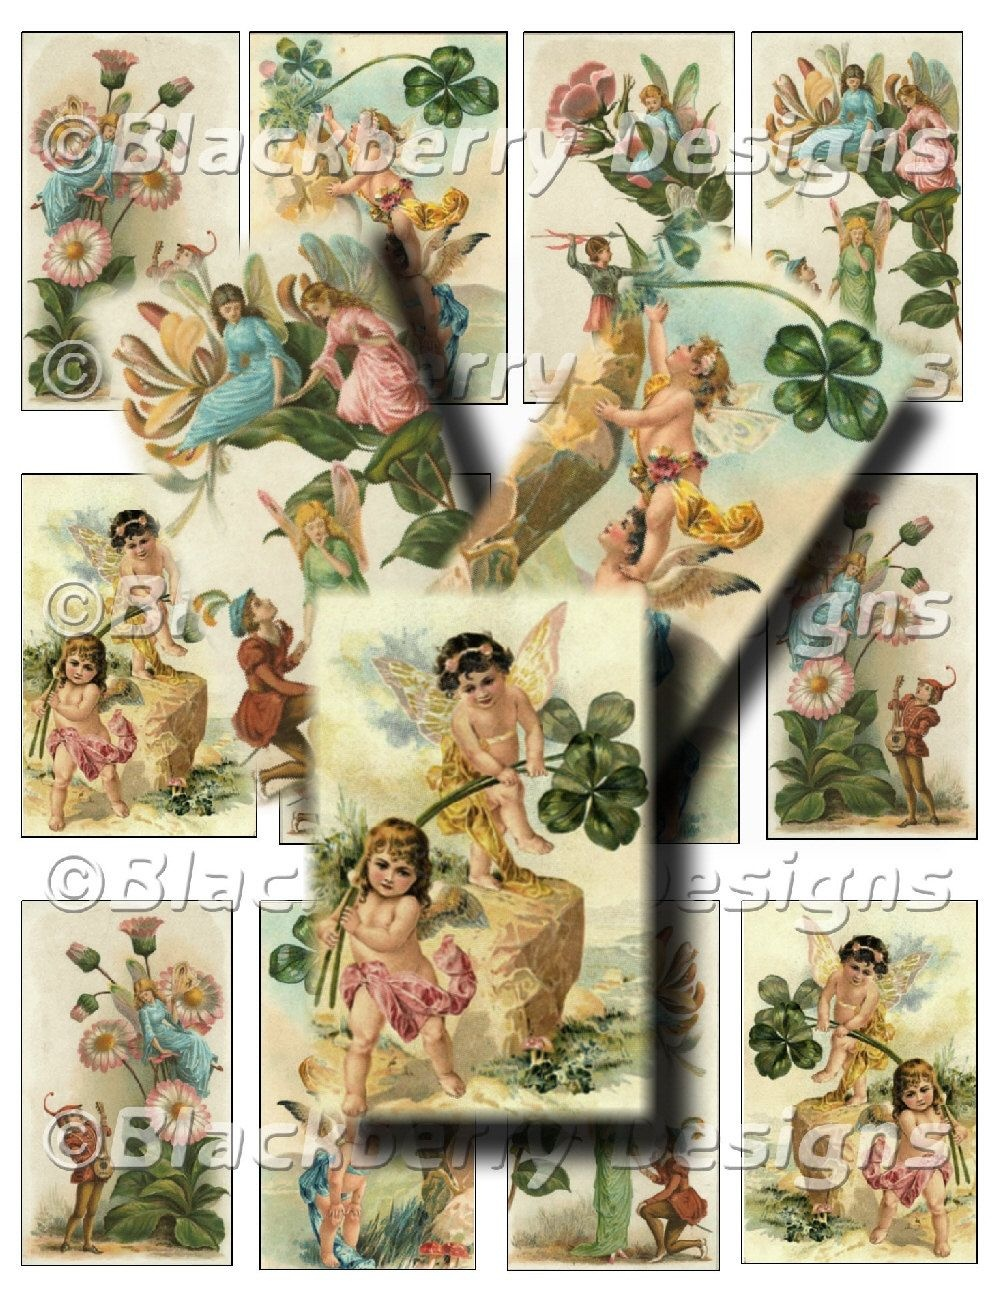 Free Printable Decoupage Papers | Cardstock, Decoupage Paper - Free Printable Decoupage Images